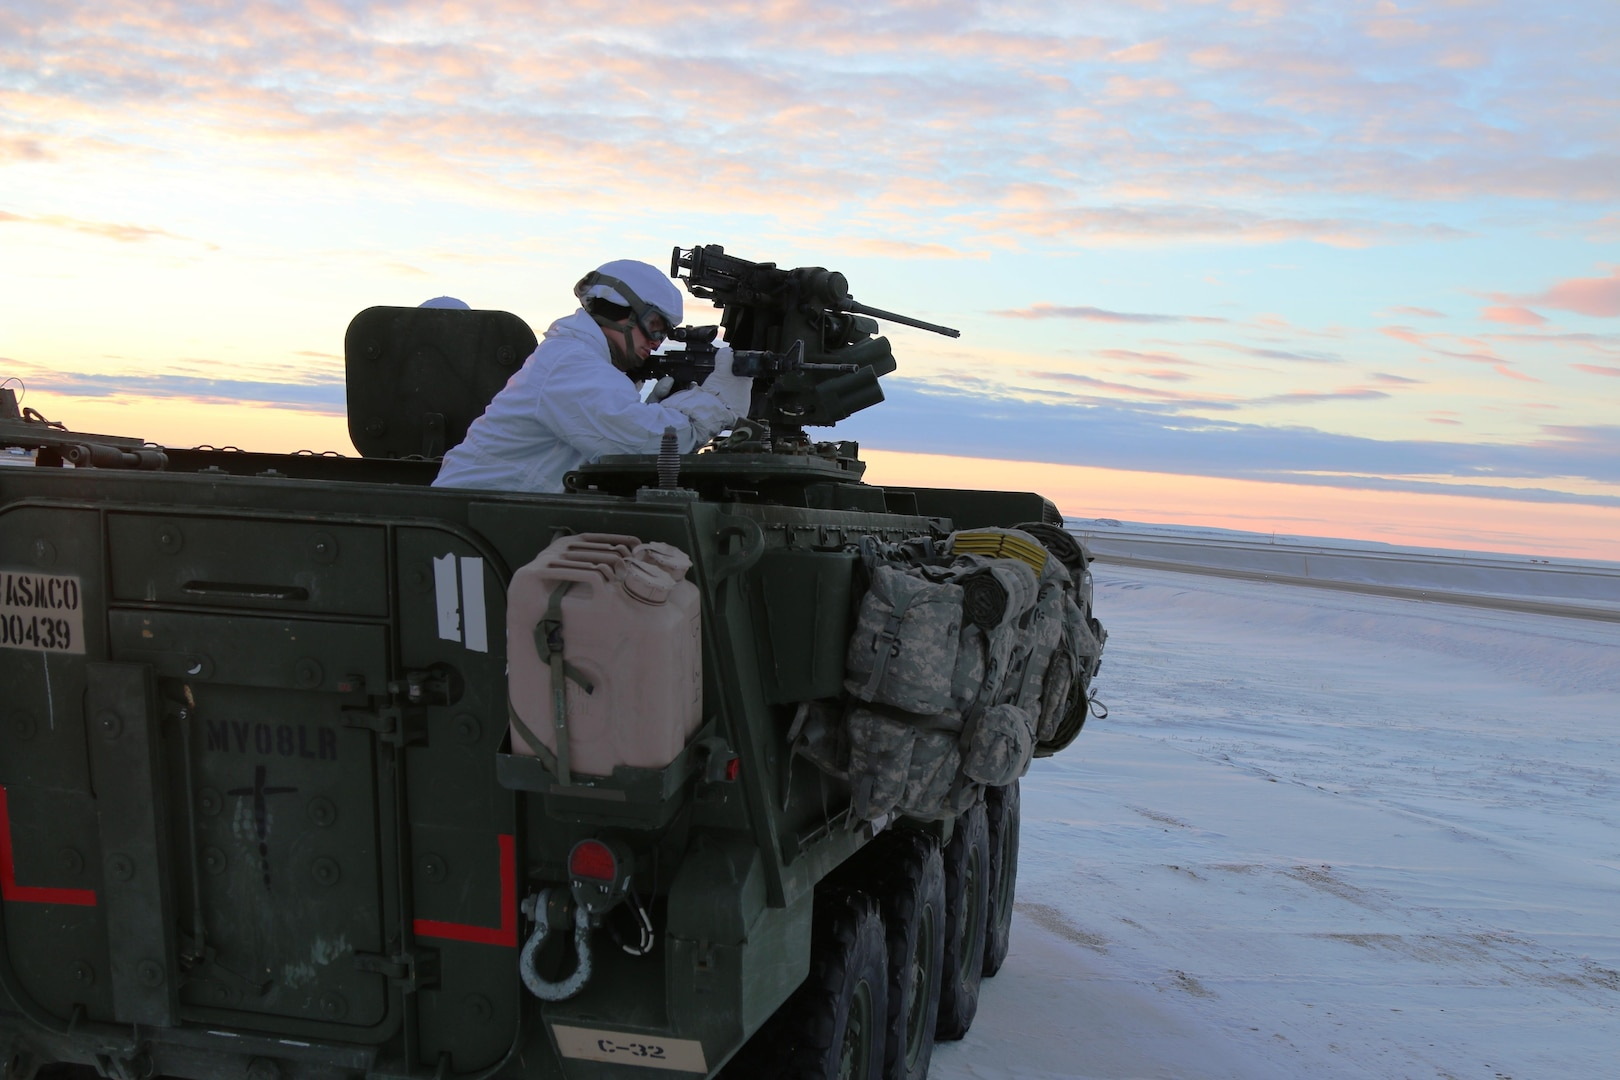 A U.S. Army Alaska Soldier with Bravo Company, 3-21 Infantry Regiment, 1st Stryker Brigade scanning the Arctic tundra outside Deadhorse, Alaska, during Operation Arctic Pegasus, Nov. 4, 2015. Arctic Pegasus is U.S. Army Alaska's annual joint exercise designed to test rapid-deployment and readiness in the Arctic. The exercise marks the first time Strykers have deployed above the Arctic Circle. 1st Stryker Brigade Combat Team is the Army's northernmost unit and has the unique capability to deploy and operate in extreme cold regions. (Photo by Capt. Richard Packer, U.S. Army Alaska Public Affairs)